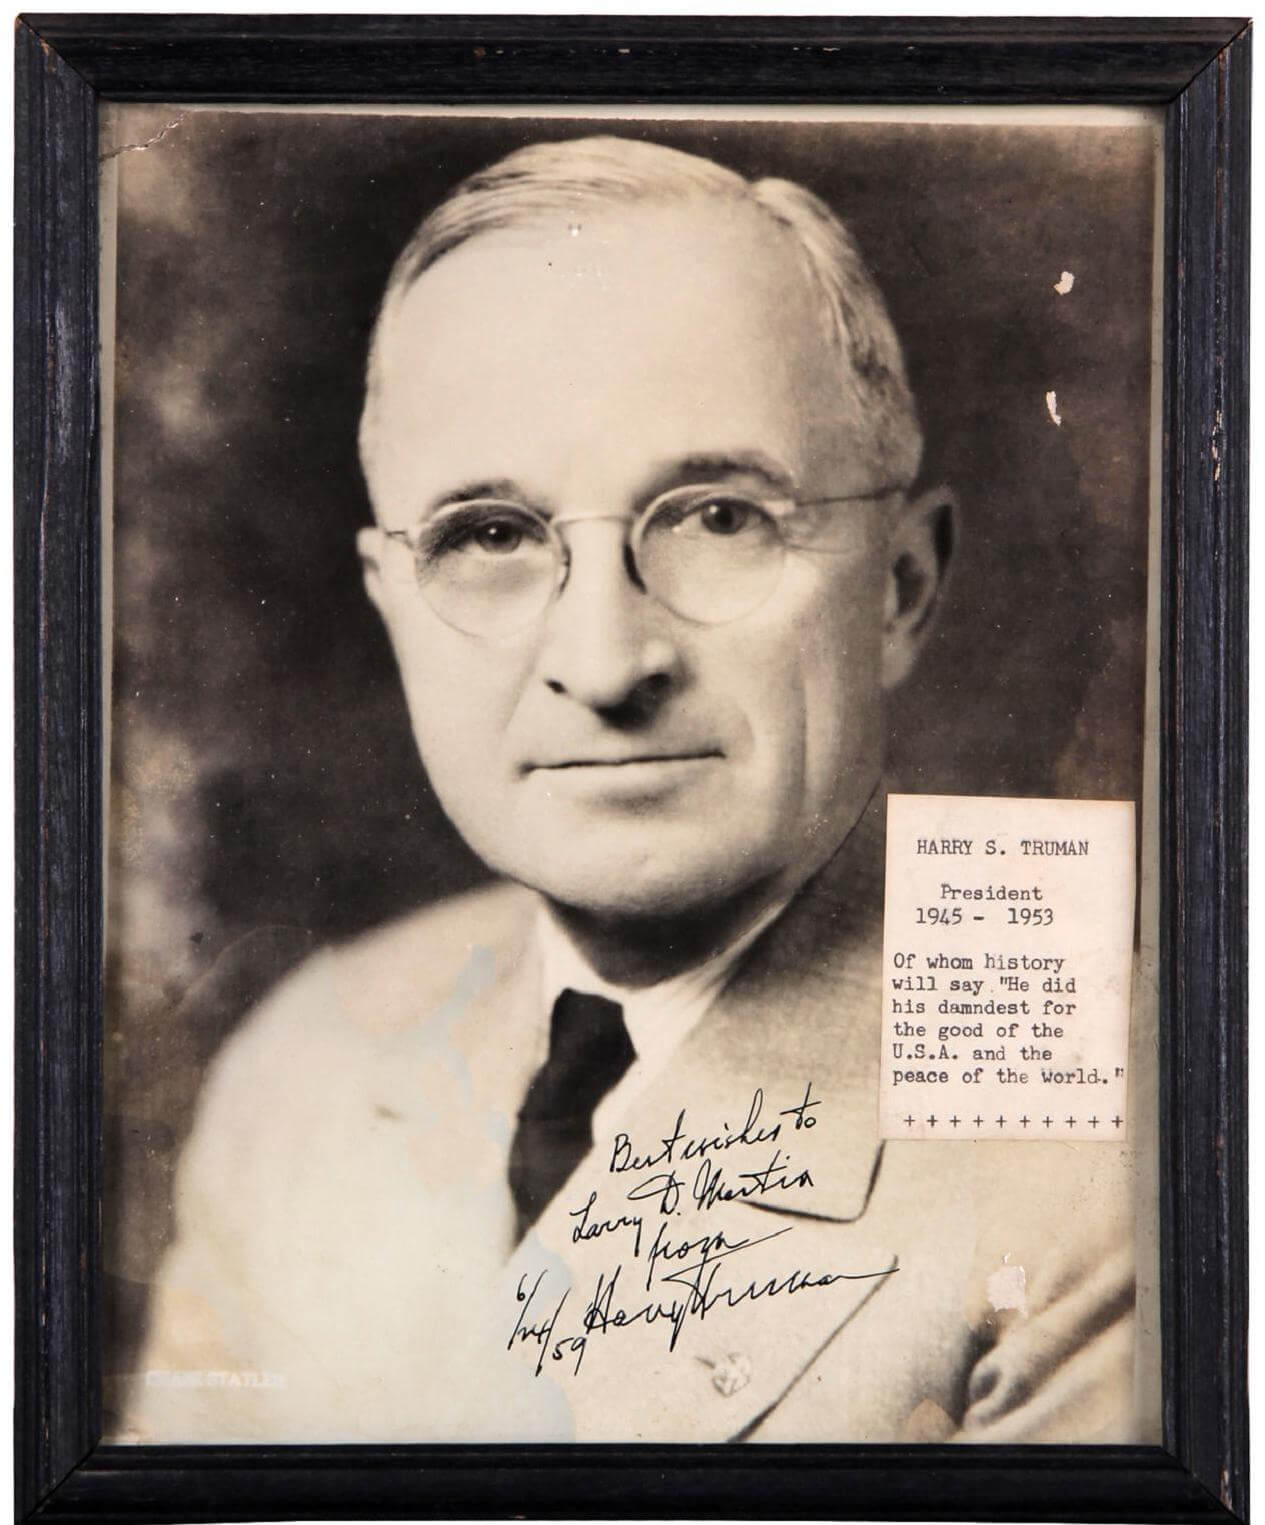 President Harry S. Truman Signed 6/24/59 8x10 Photo